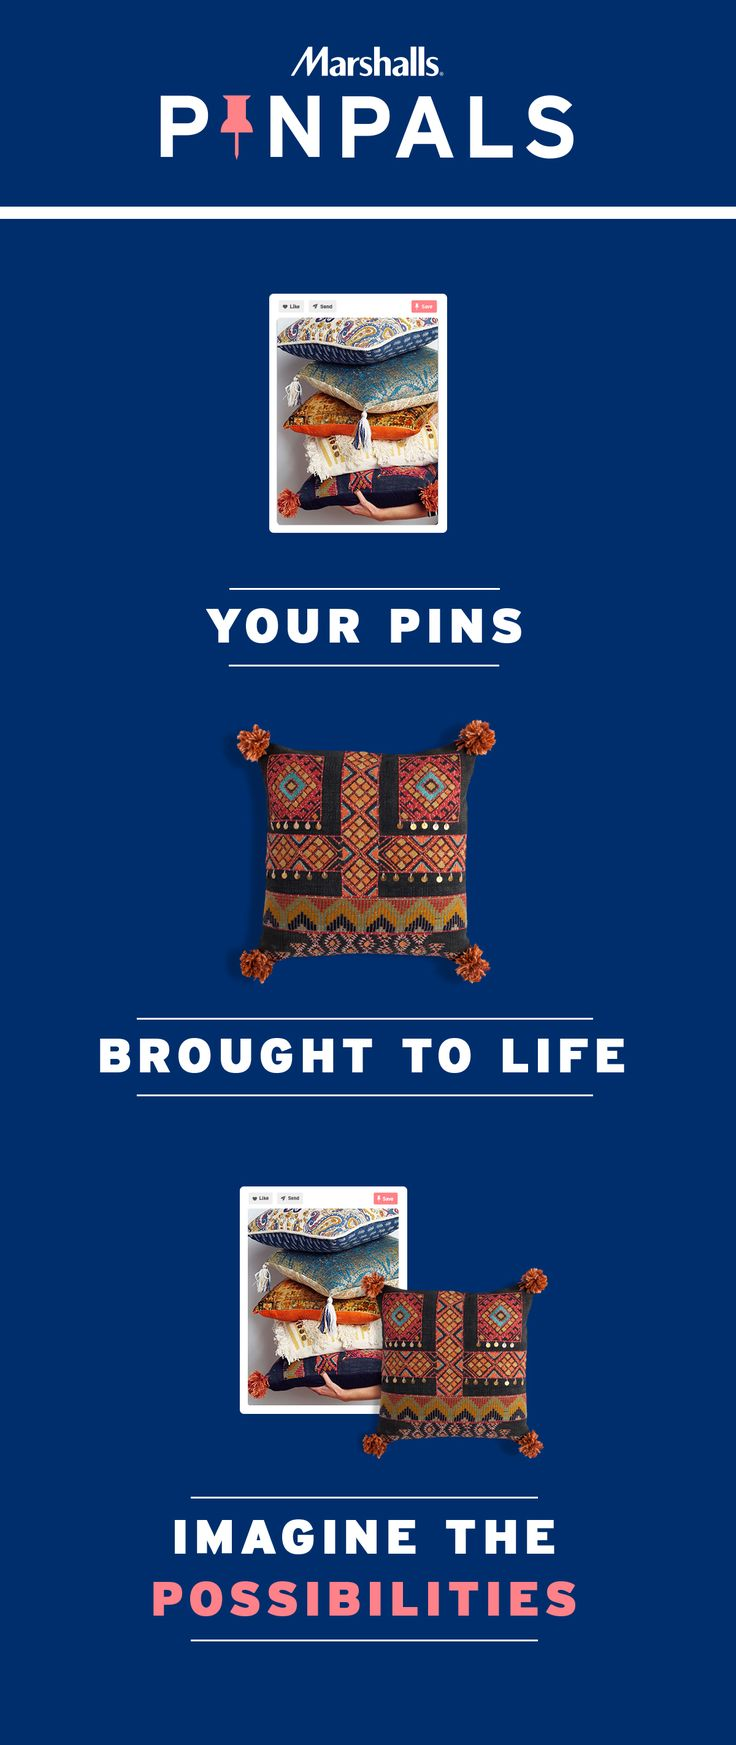 Your Pinterest dreams are about to become a reality. Save what inspires you on our Pin Pals board and a style pro might curate a box of Marshalls gems tailored to your tastes! No purchase needed. #Contest